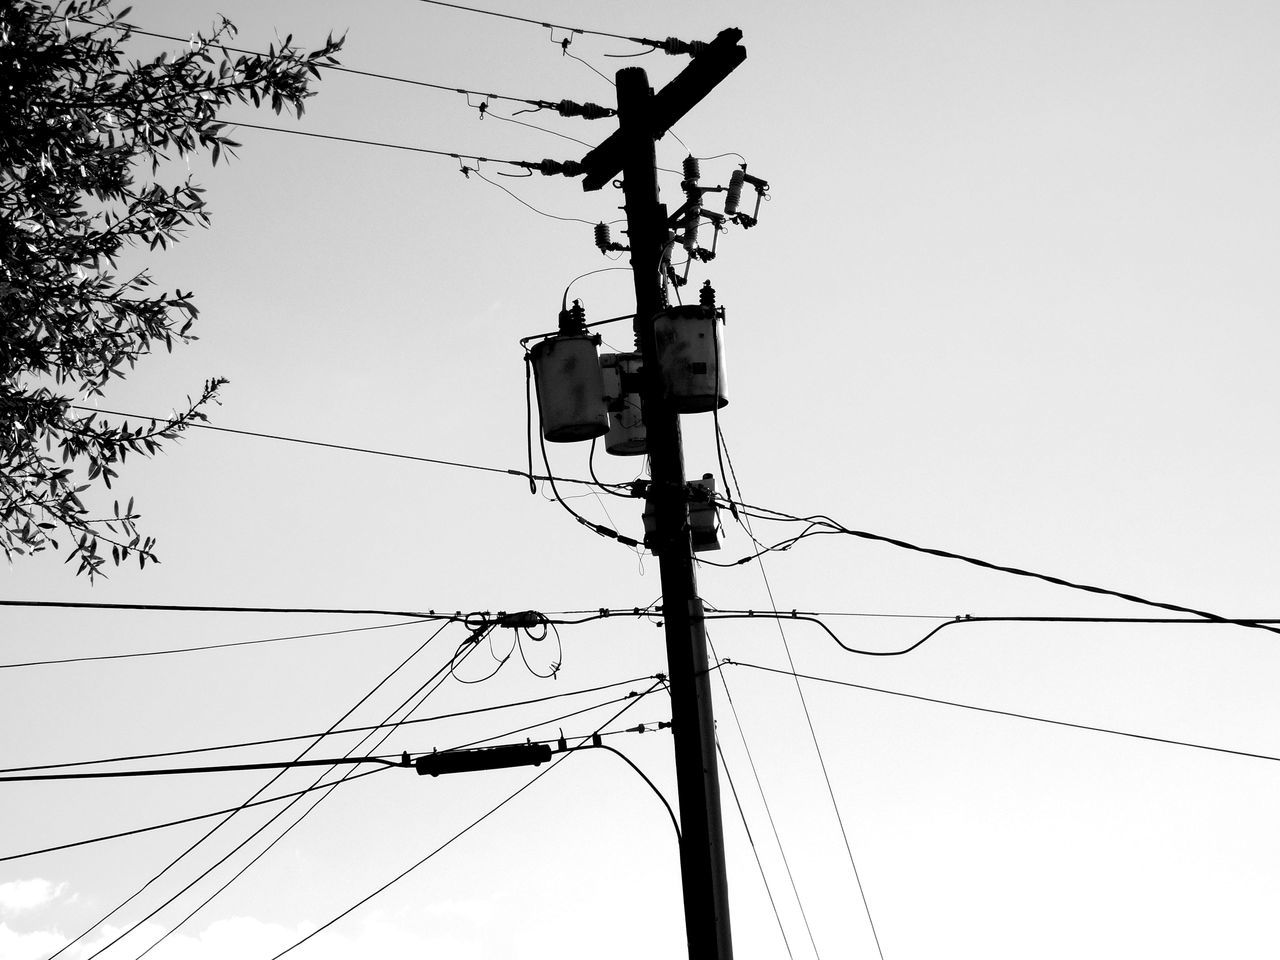 Monochrome Photography Blackandwhite Telephone Pole Telephone Wires Telephone Lines Outdoors Streetphotography Light And Shadow Darkness And Light On The Road Lines Lines And Angles Directly Above Sky Looking Up Sunny Day Notes From The Underground Beauty In Ordinary Things Above The City Random Acts Of Photography Communication Connection Florida Adapted To The City Power Lines